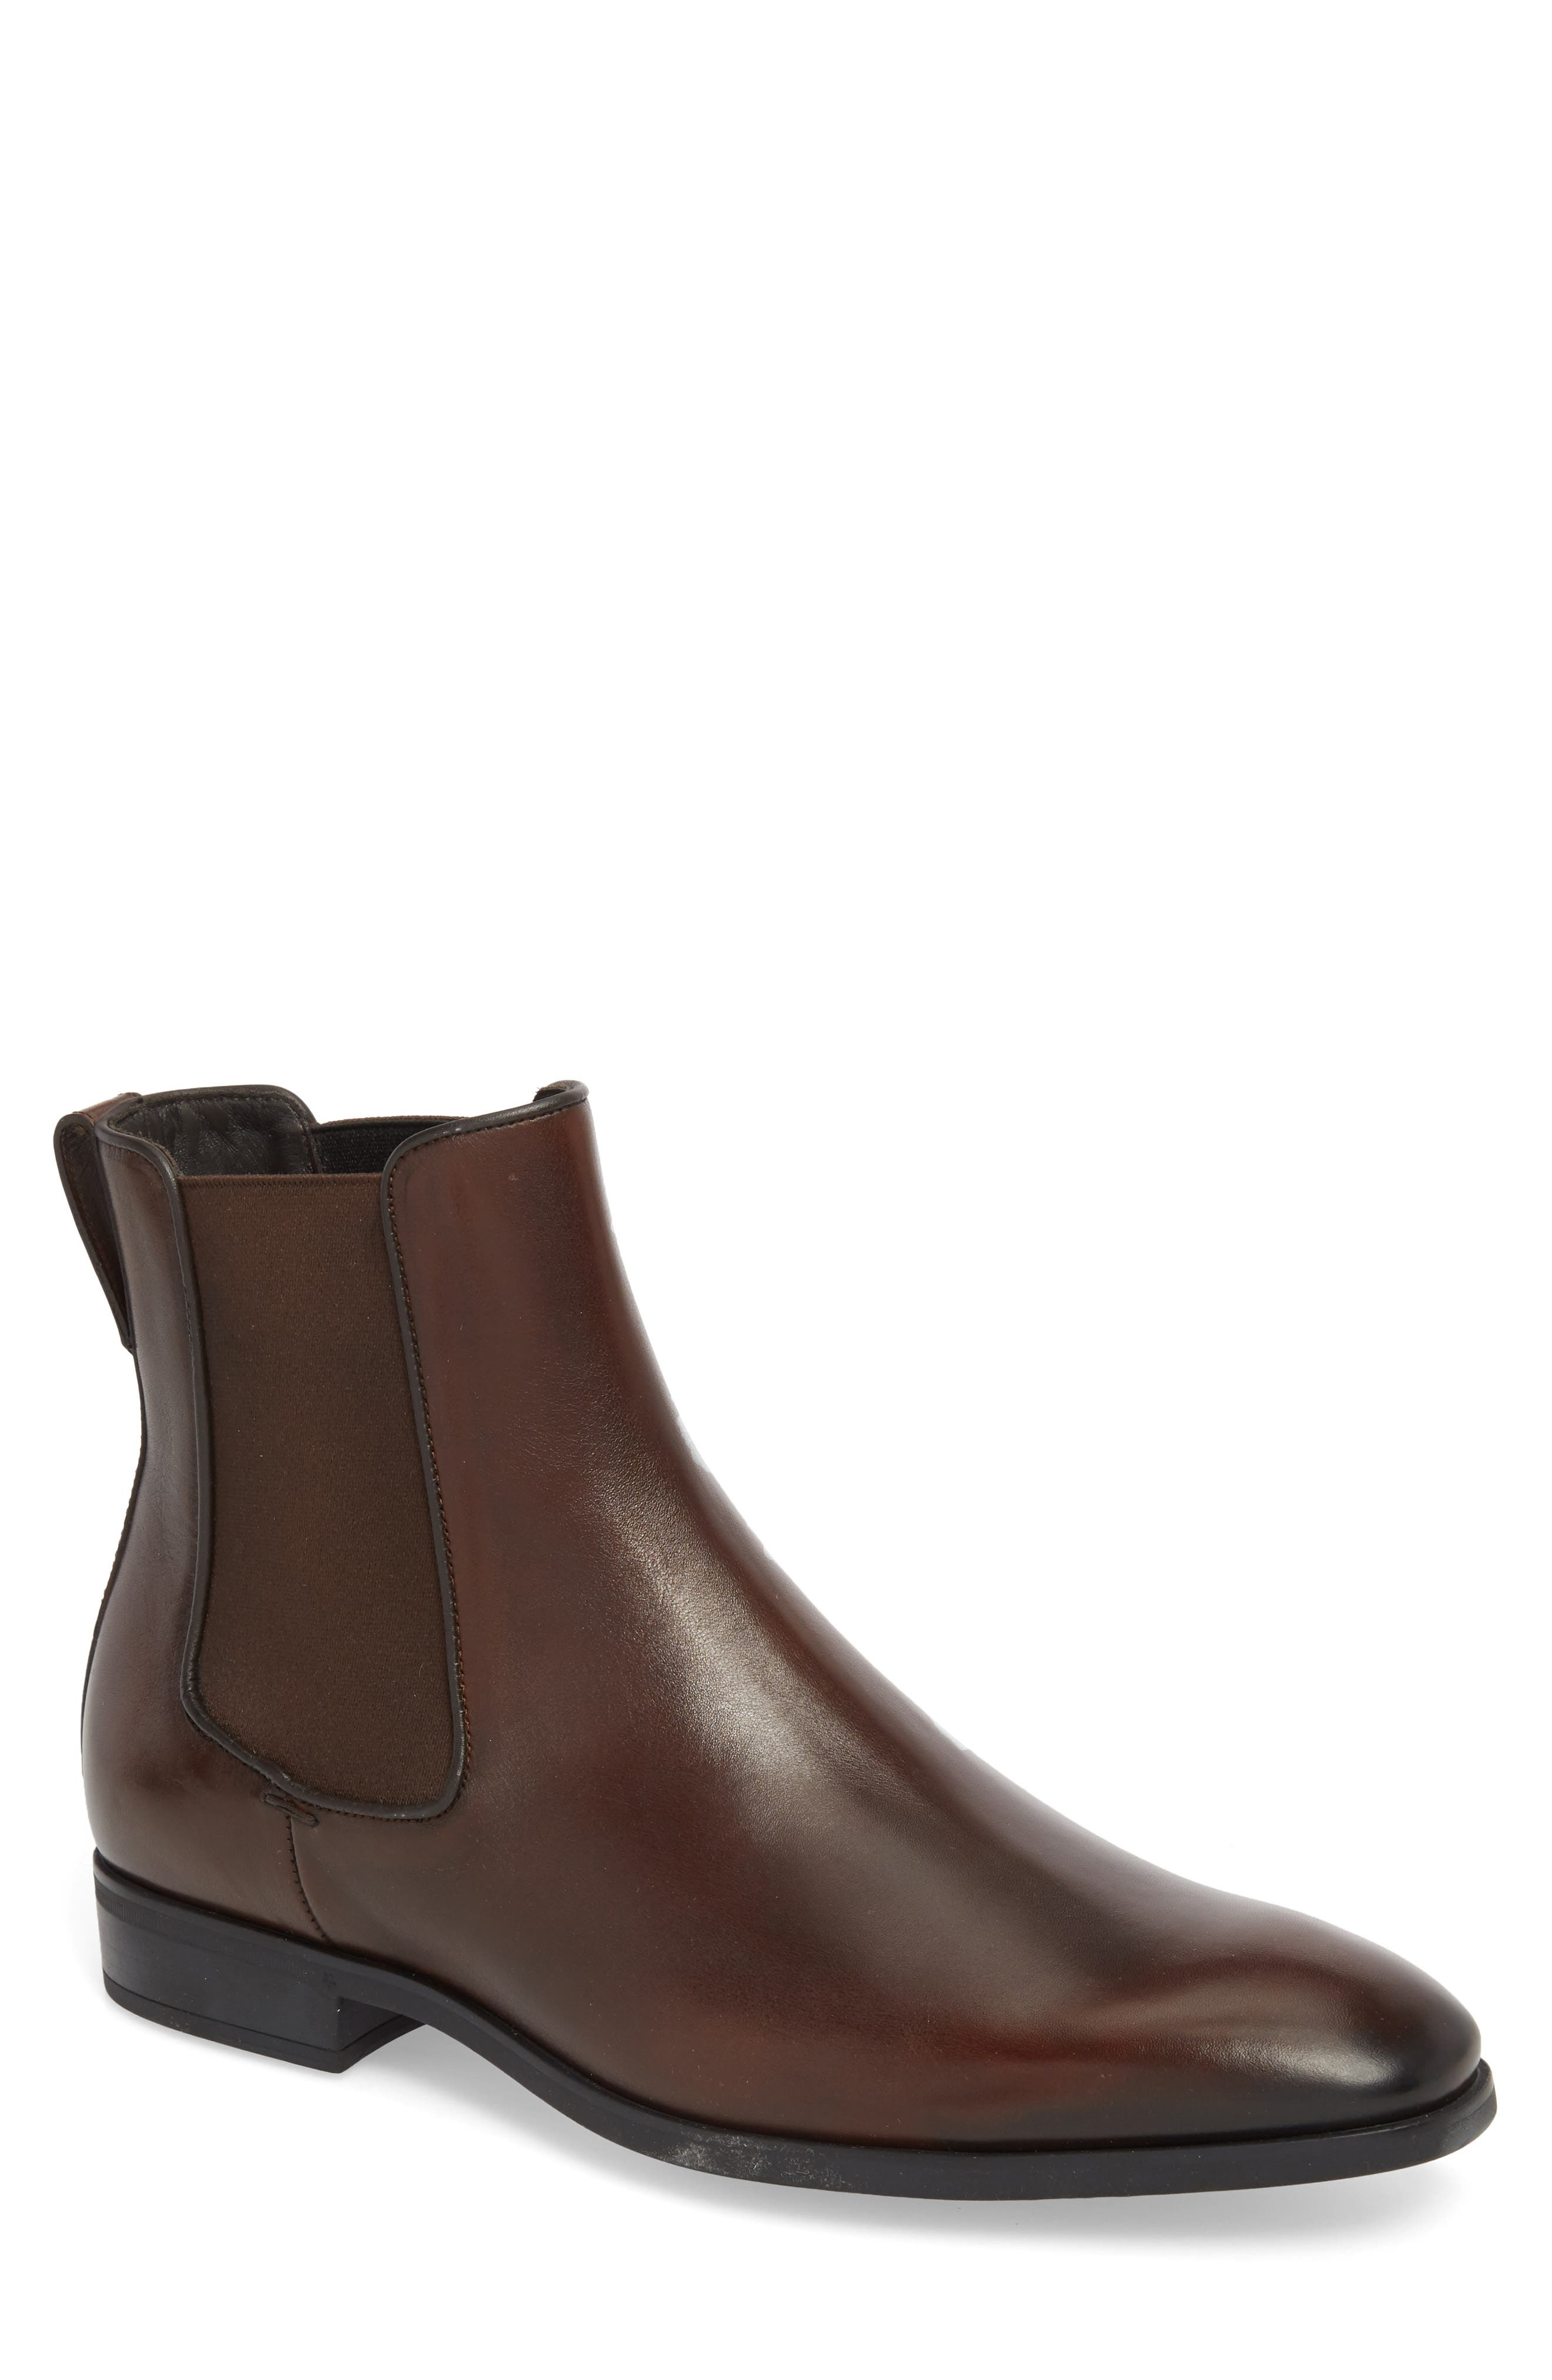 To Boot New York Aldrich Mid Chelsea Boot, Brown